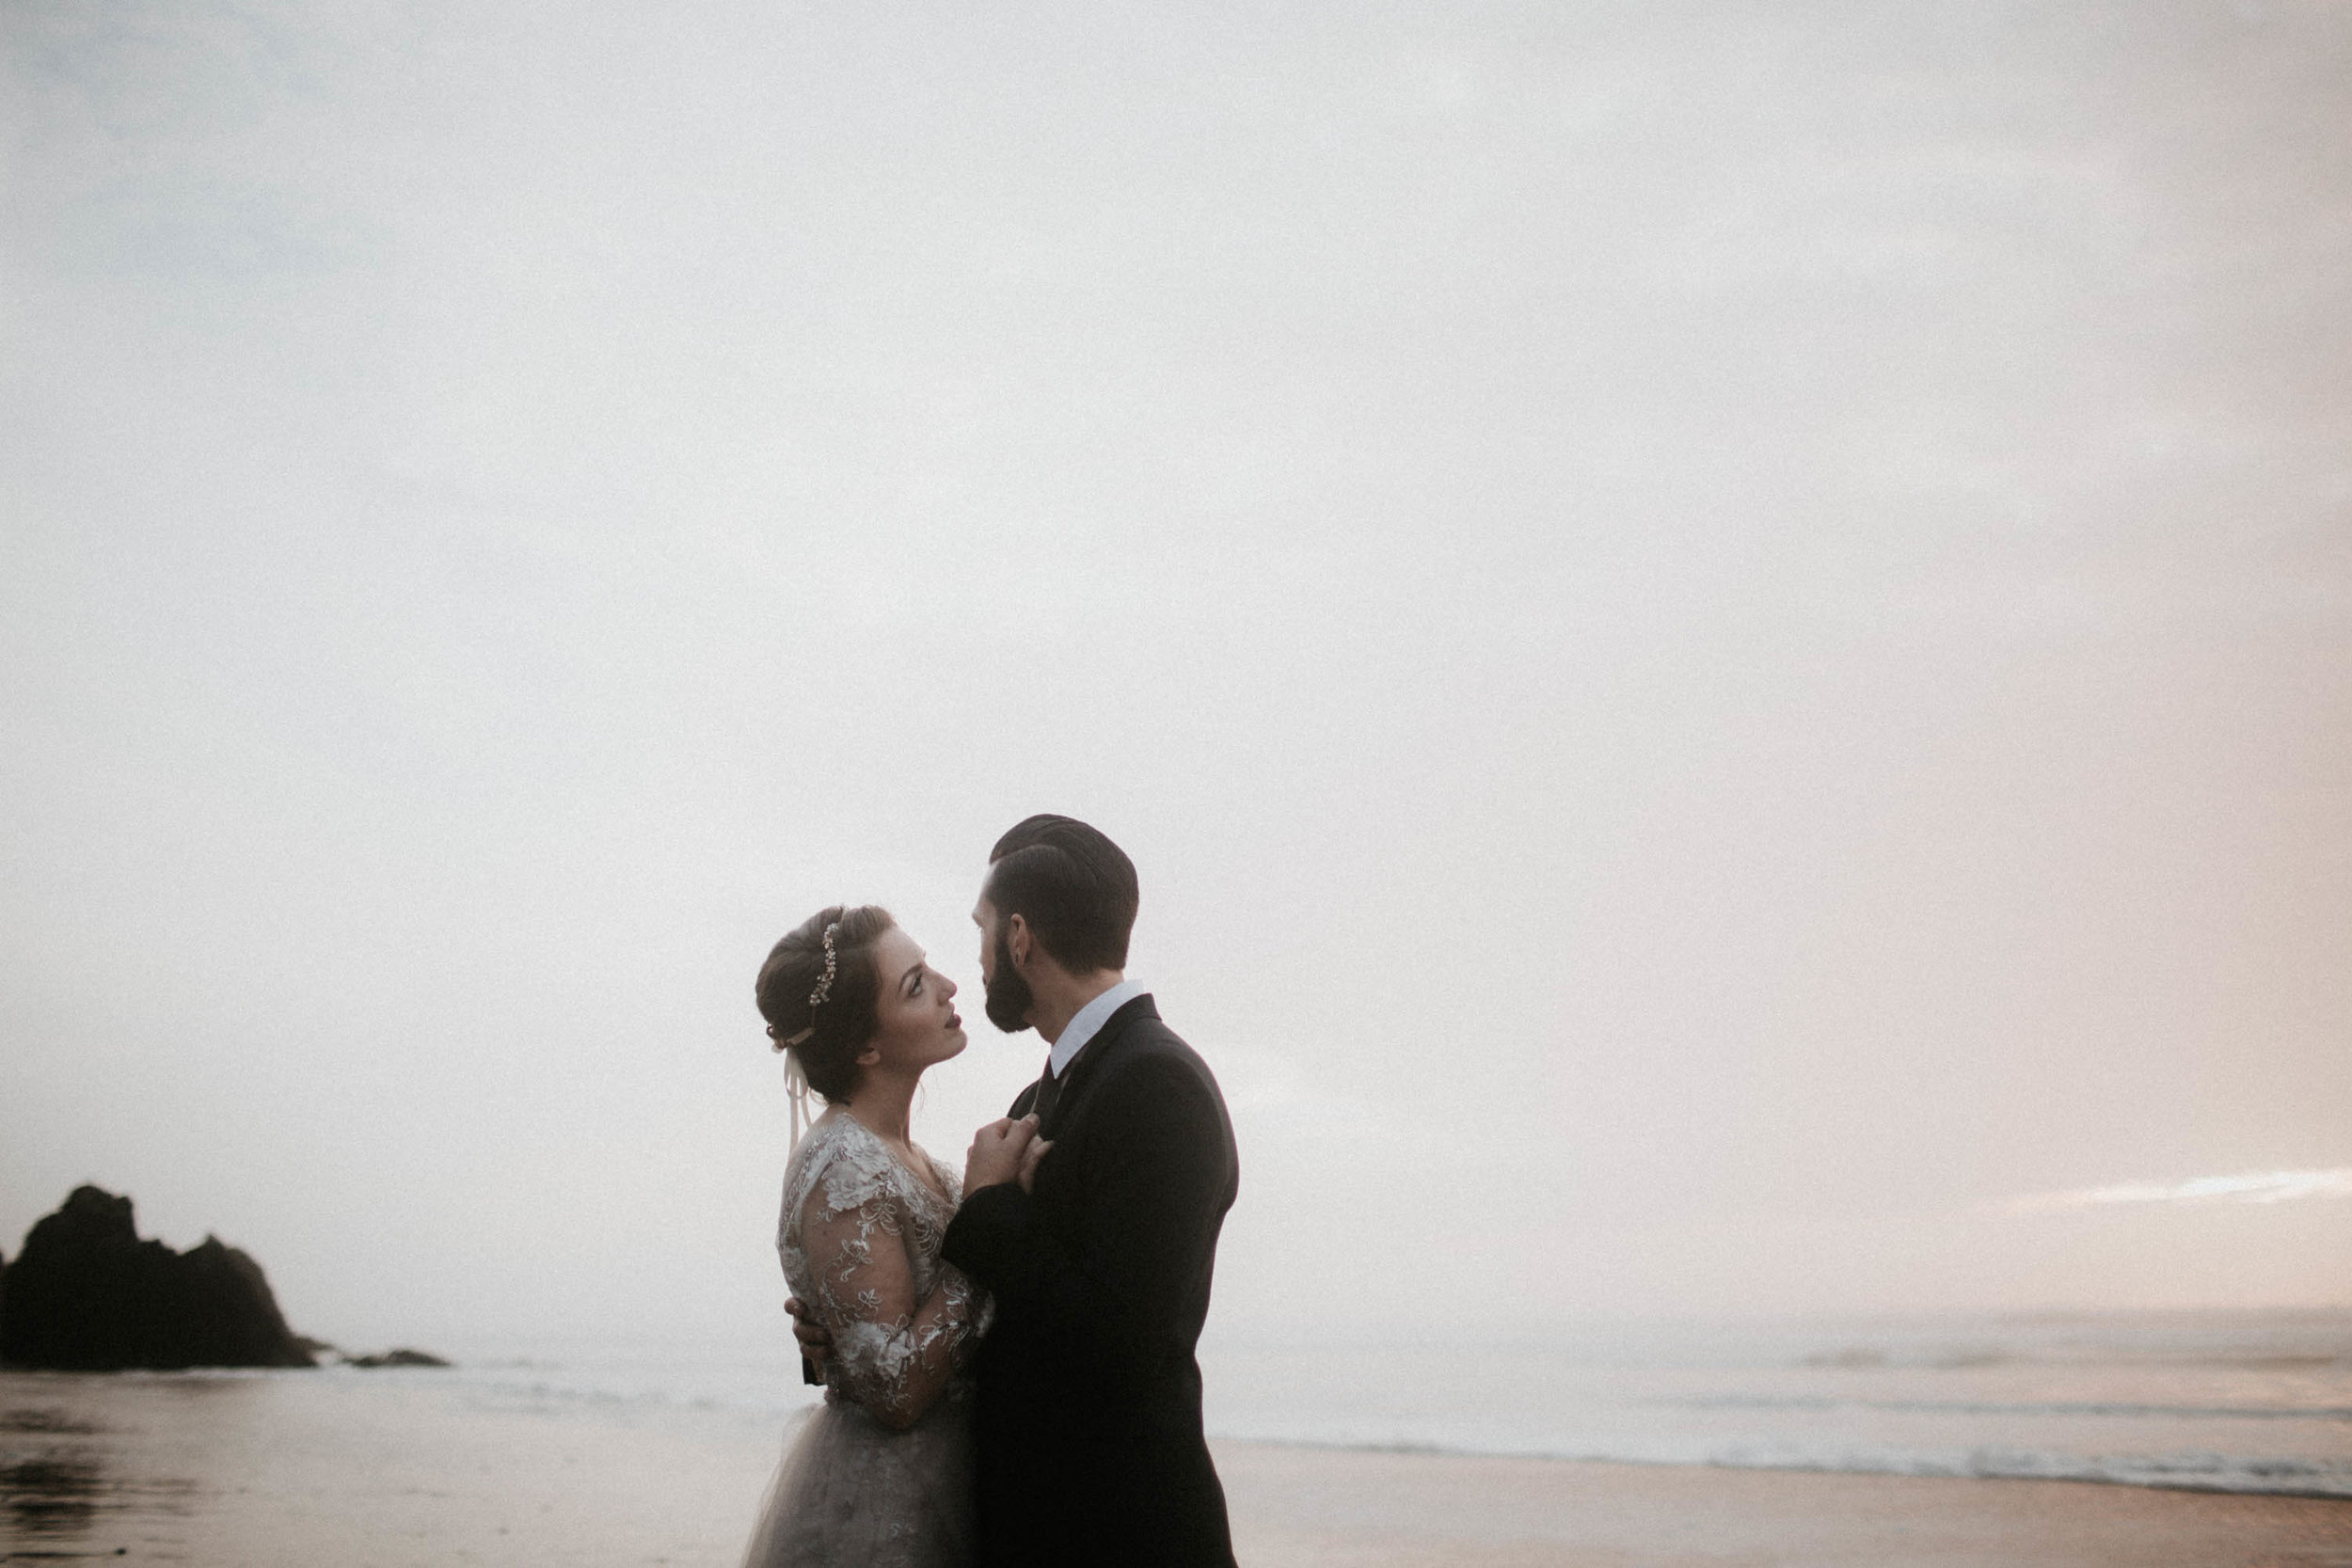 canonbeach_elopment_weddingphotographer-82.jpg